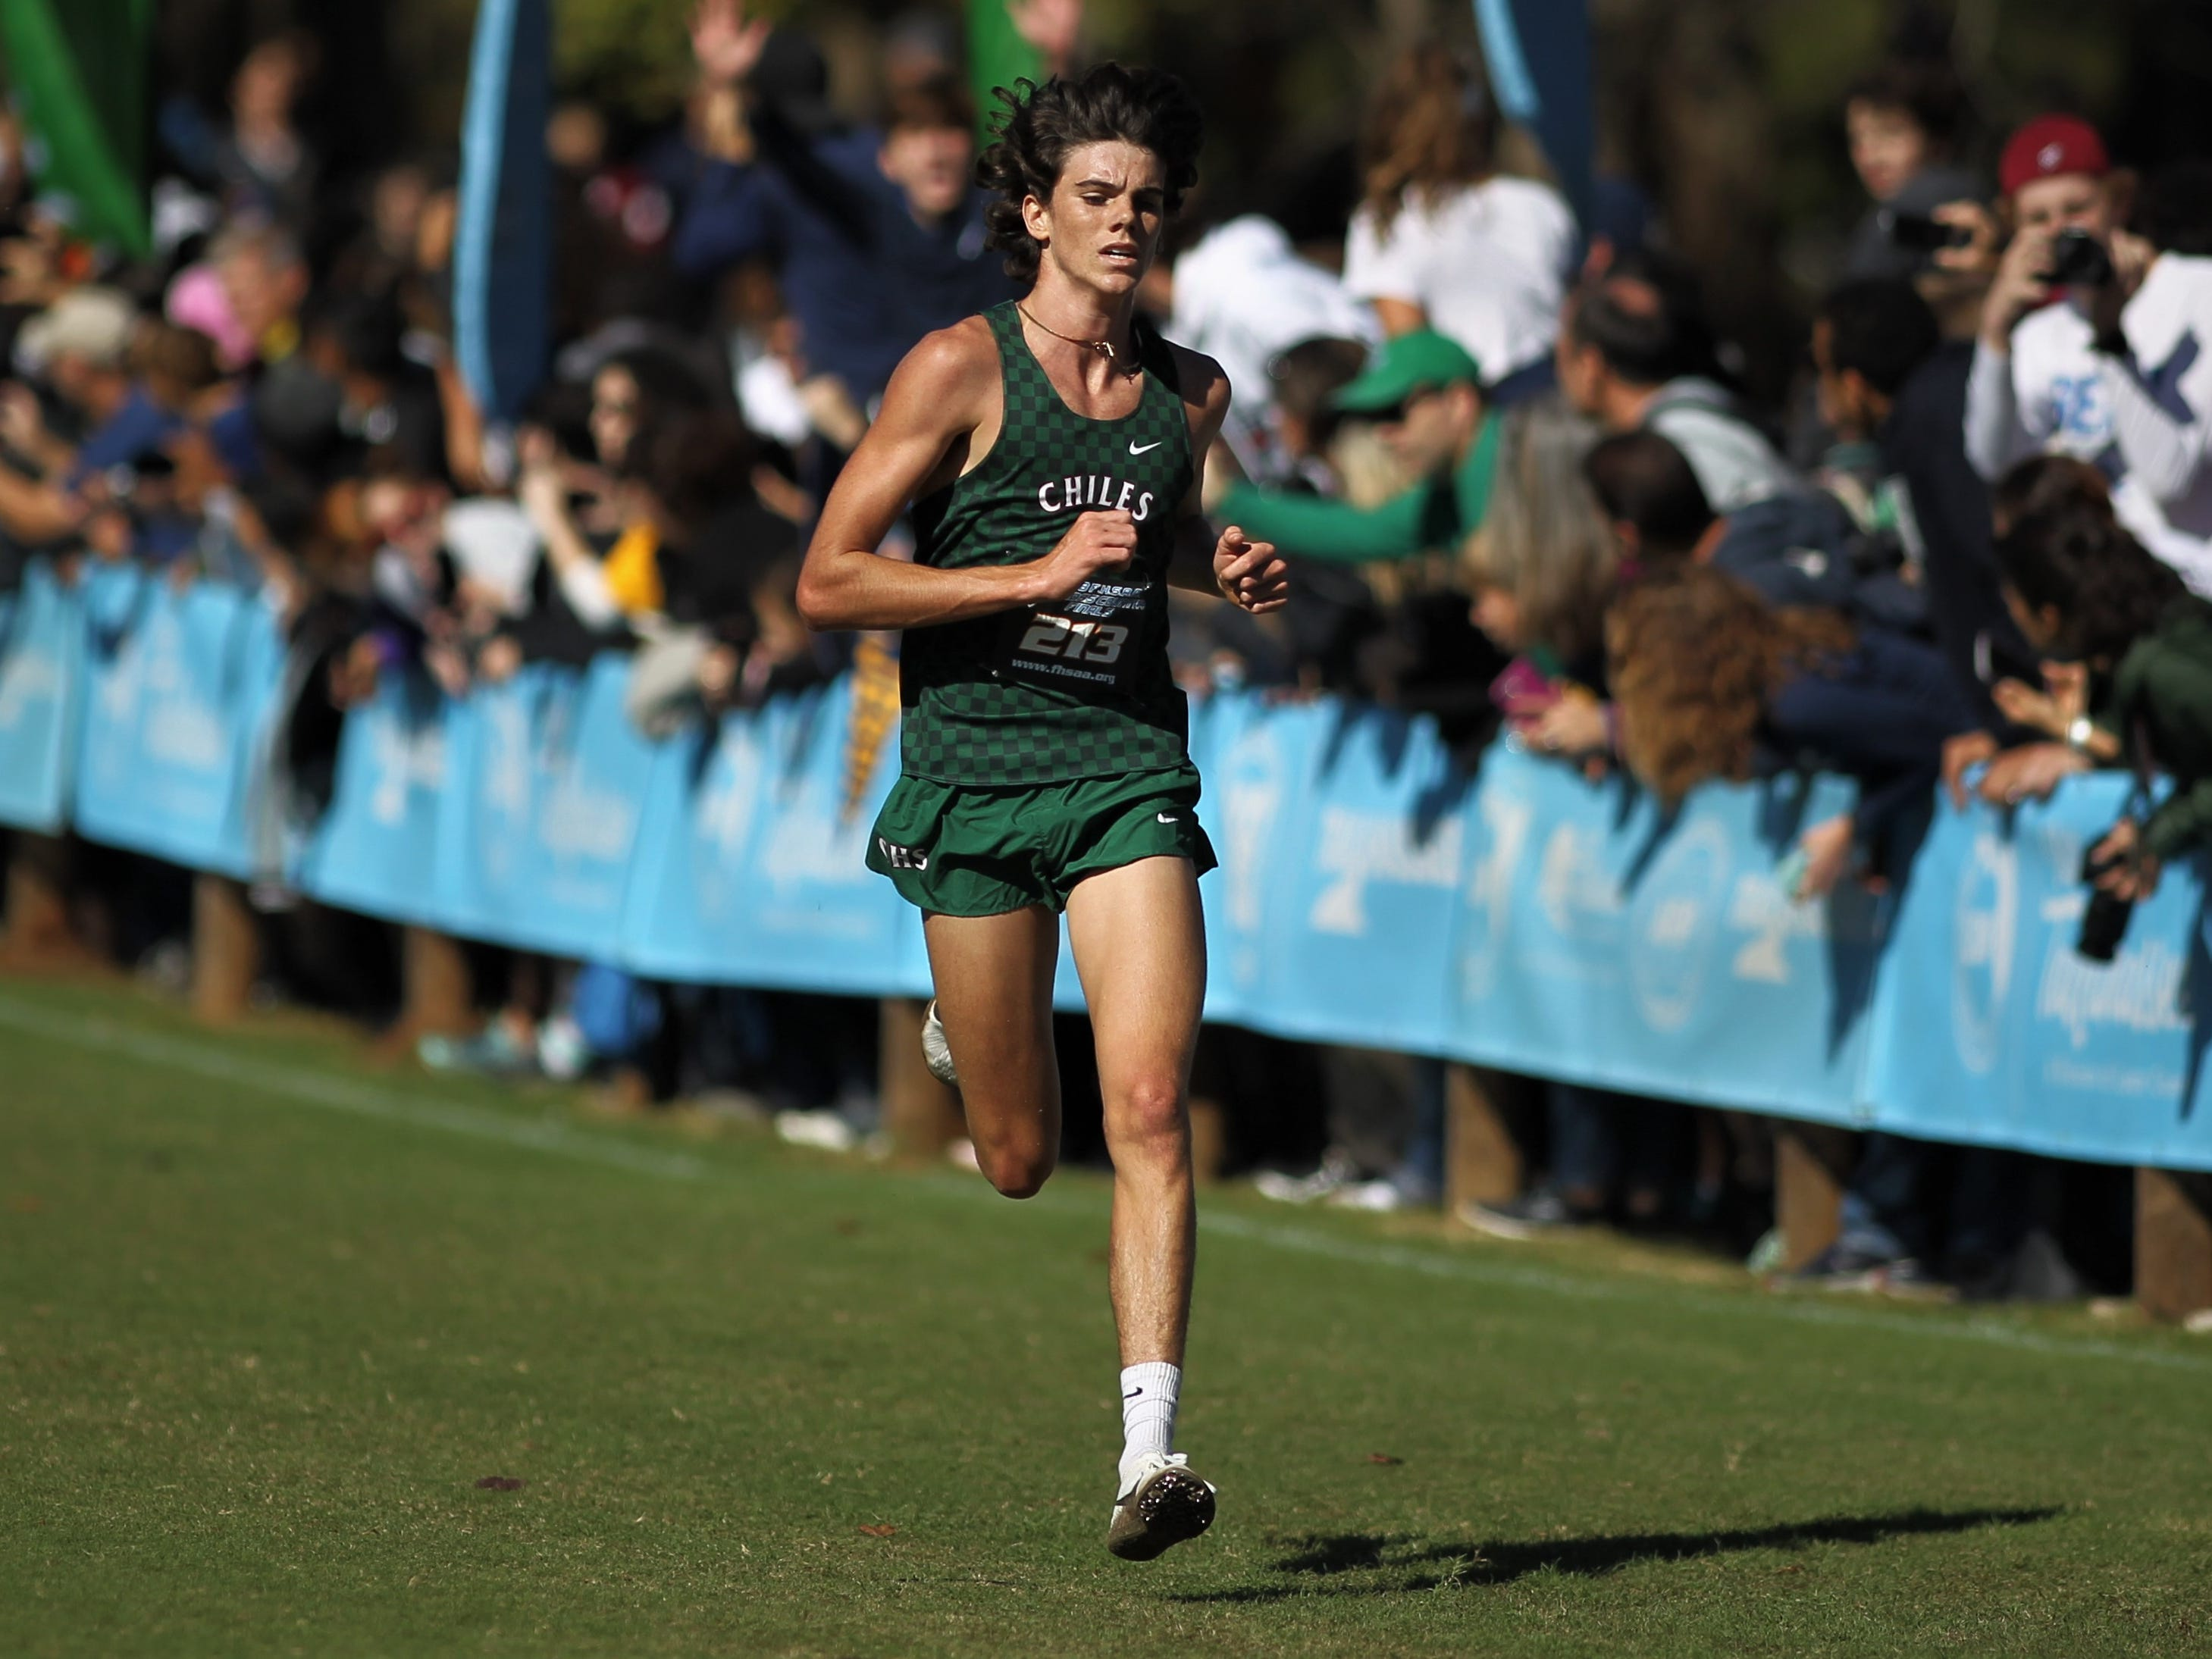 Chiles senior Connor Phillips runs to the finish of the Class 3A boys race in the FHSAA Cross Country State Championships at Apalachee Regional Park on Saturday, Nov. 10, 2018.